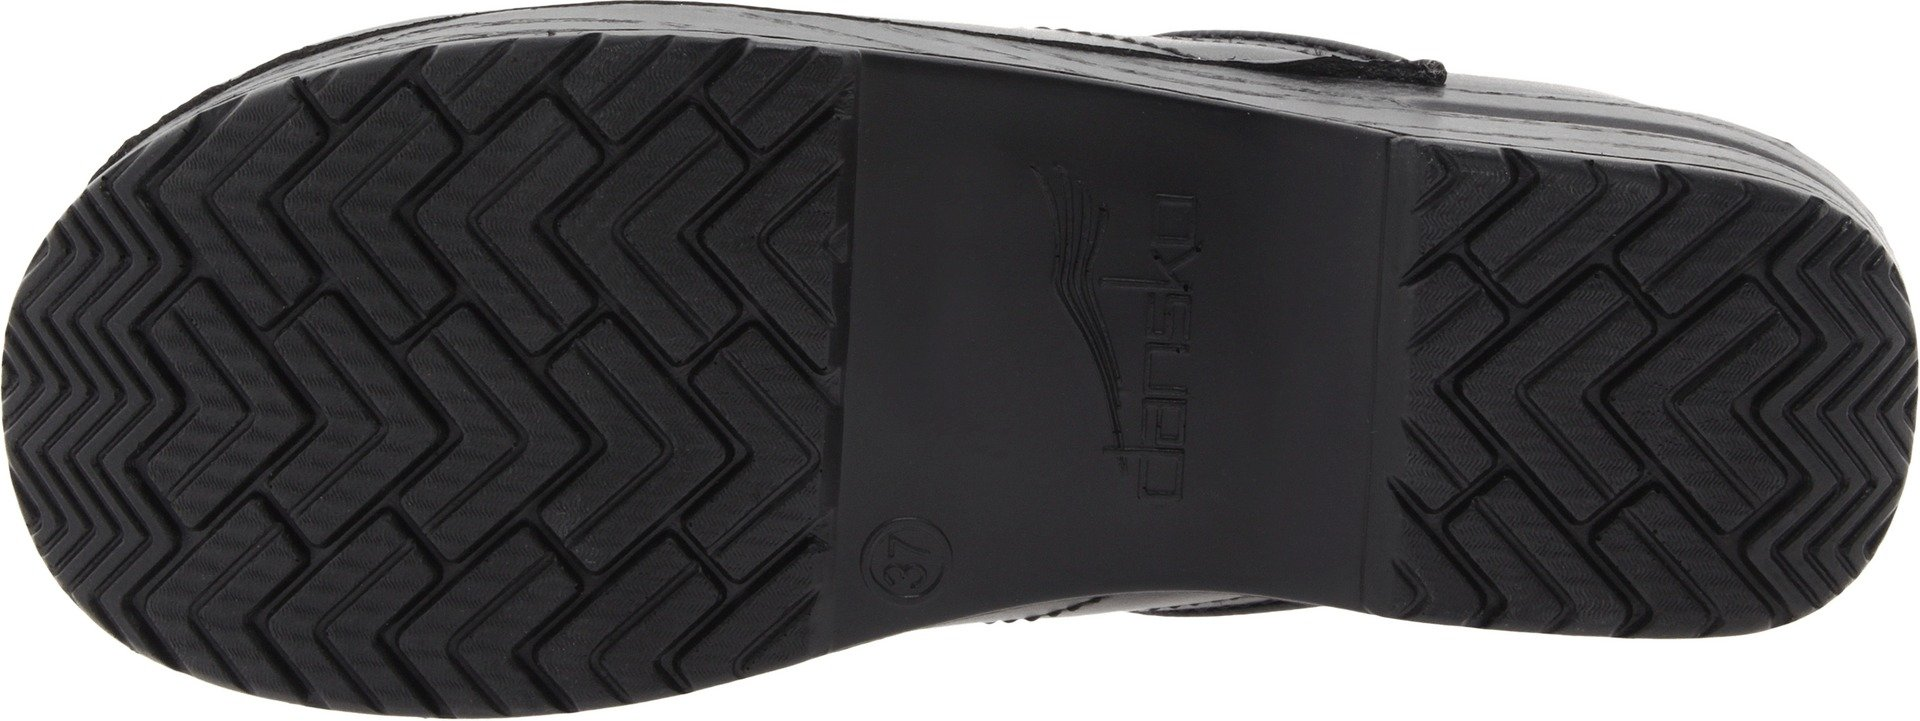 Dansko Women's Wide Professional Clog,Black Box,38 W EU / 7.5-8 D(W) US by Dansko (Image #3)